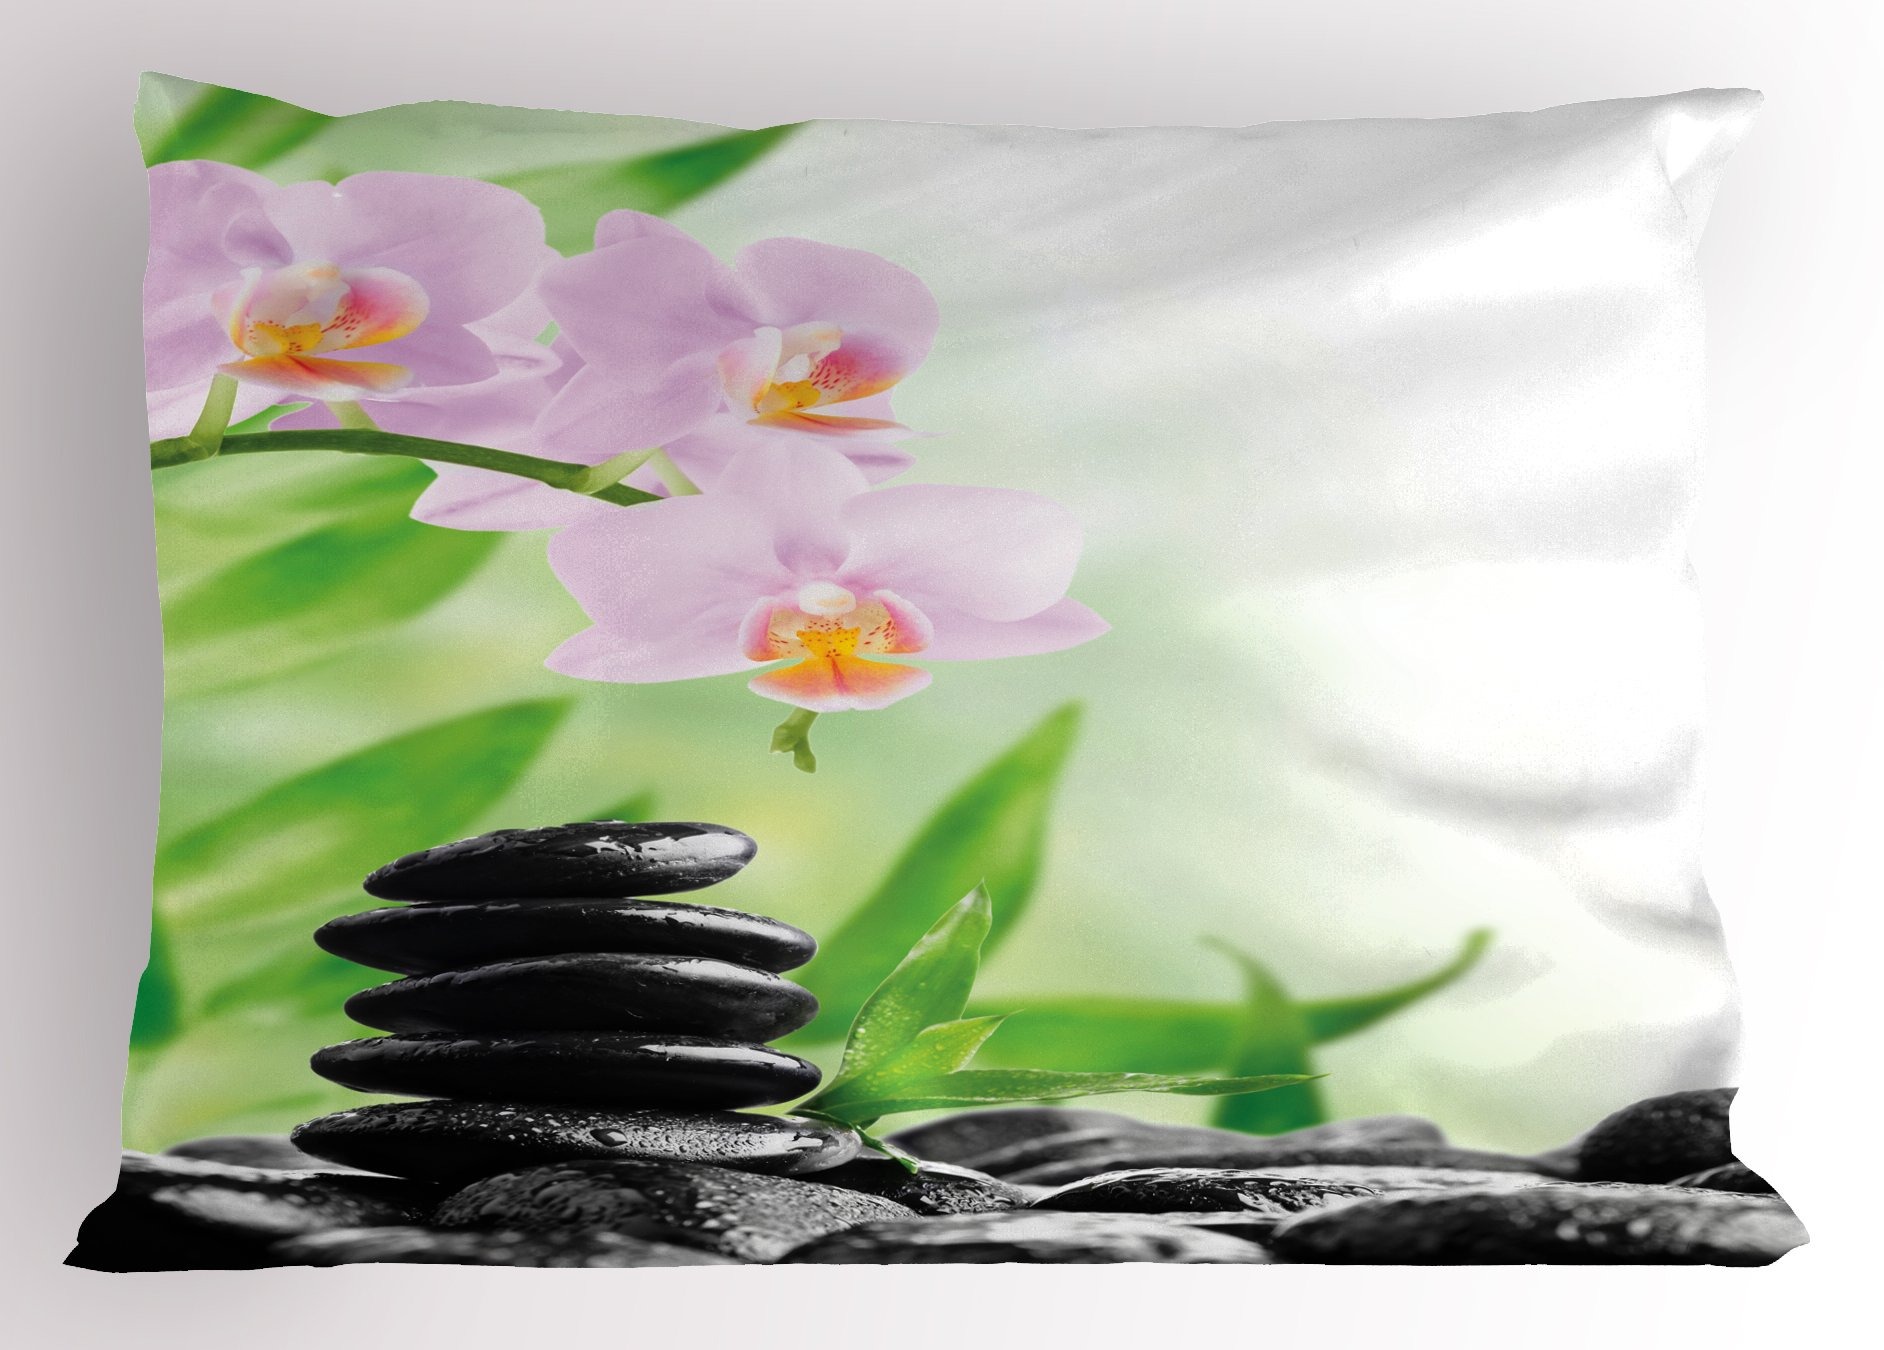 Ambesonne Spa Pillow Sham, Zen Basalt Stones and Orchid with Dew Peaceful Nature Theraphy Massage Meditation, Decorative Standard King Size Printed Pillowcase, 36 X 20 inches, Black Pink Green